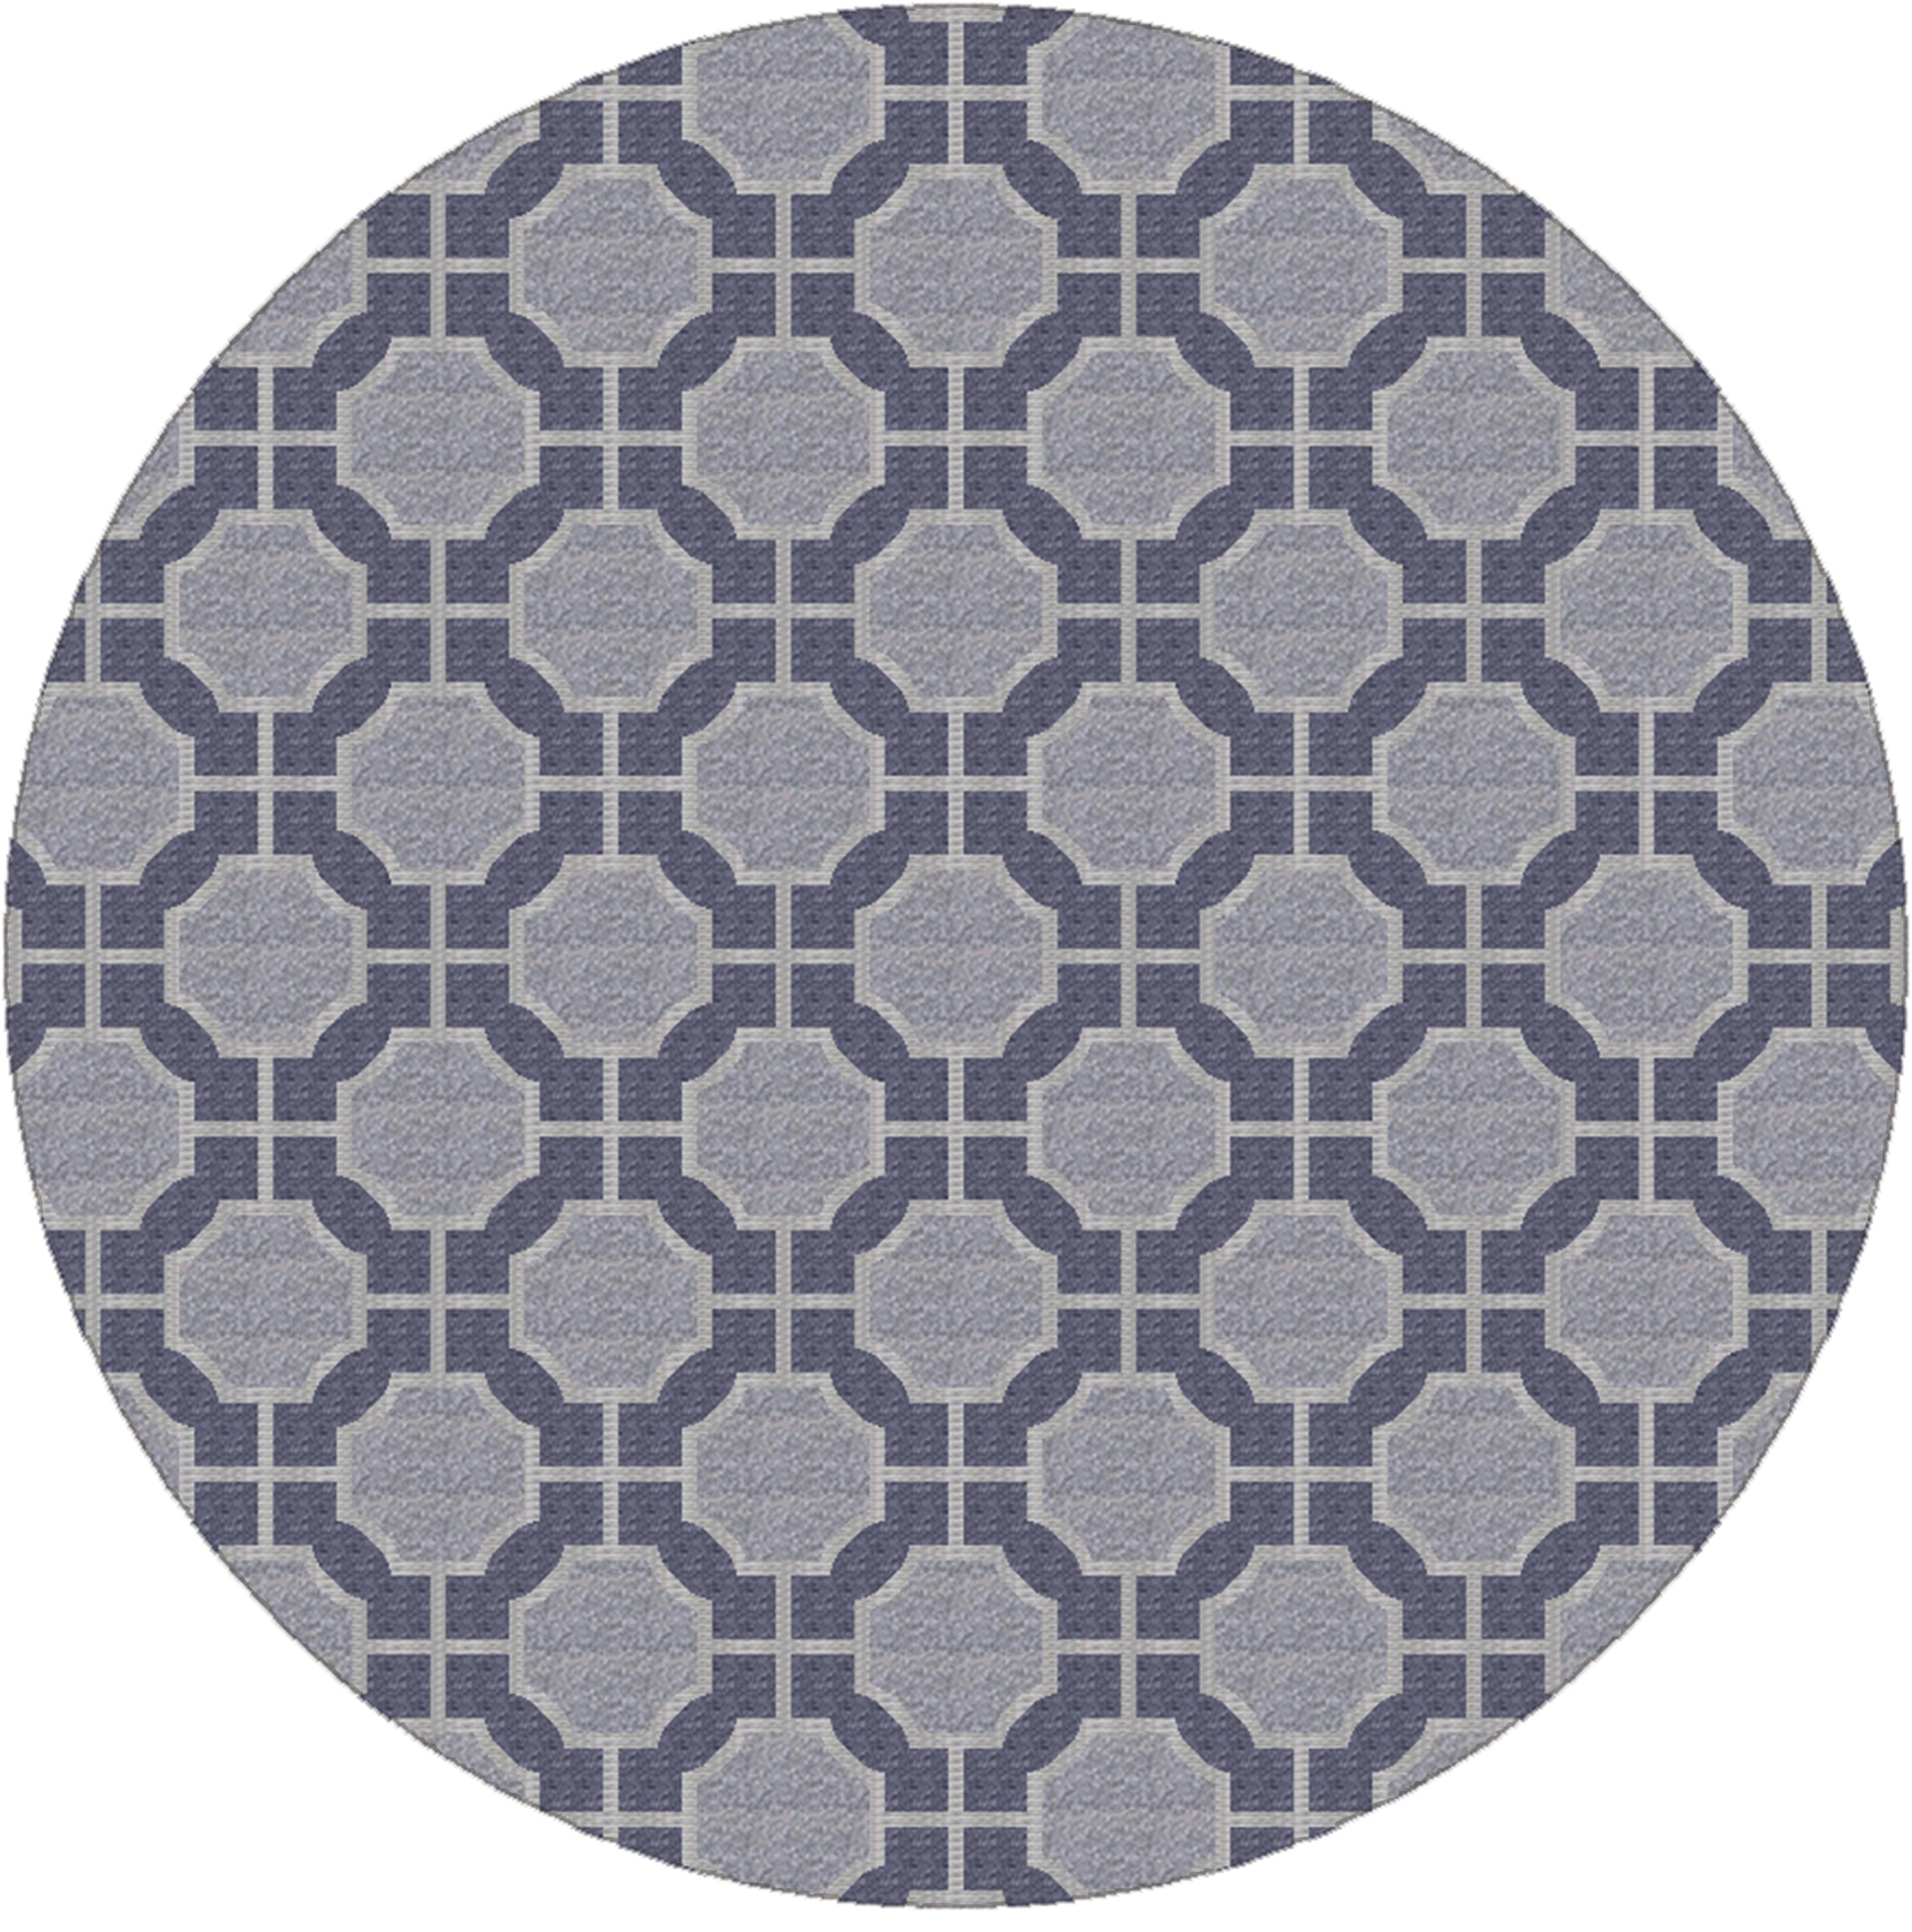 Surya Rugs Dream 8' Round - Item Number: DST1184-8RD